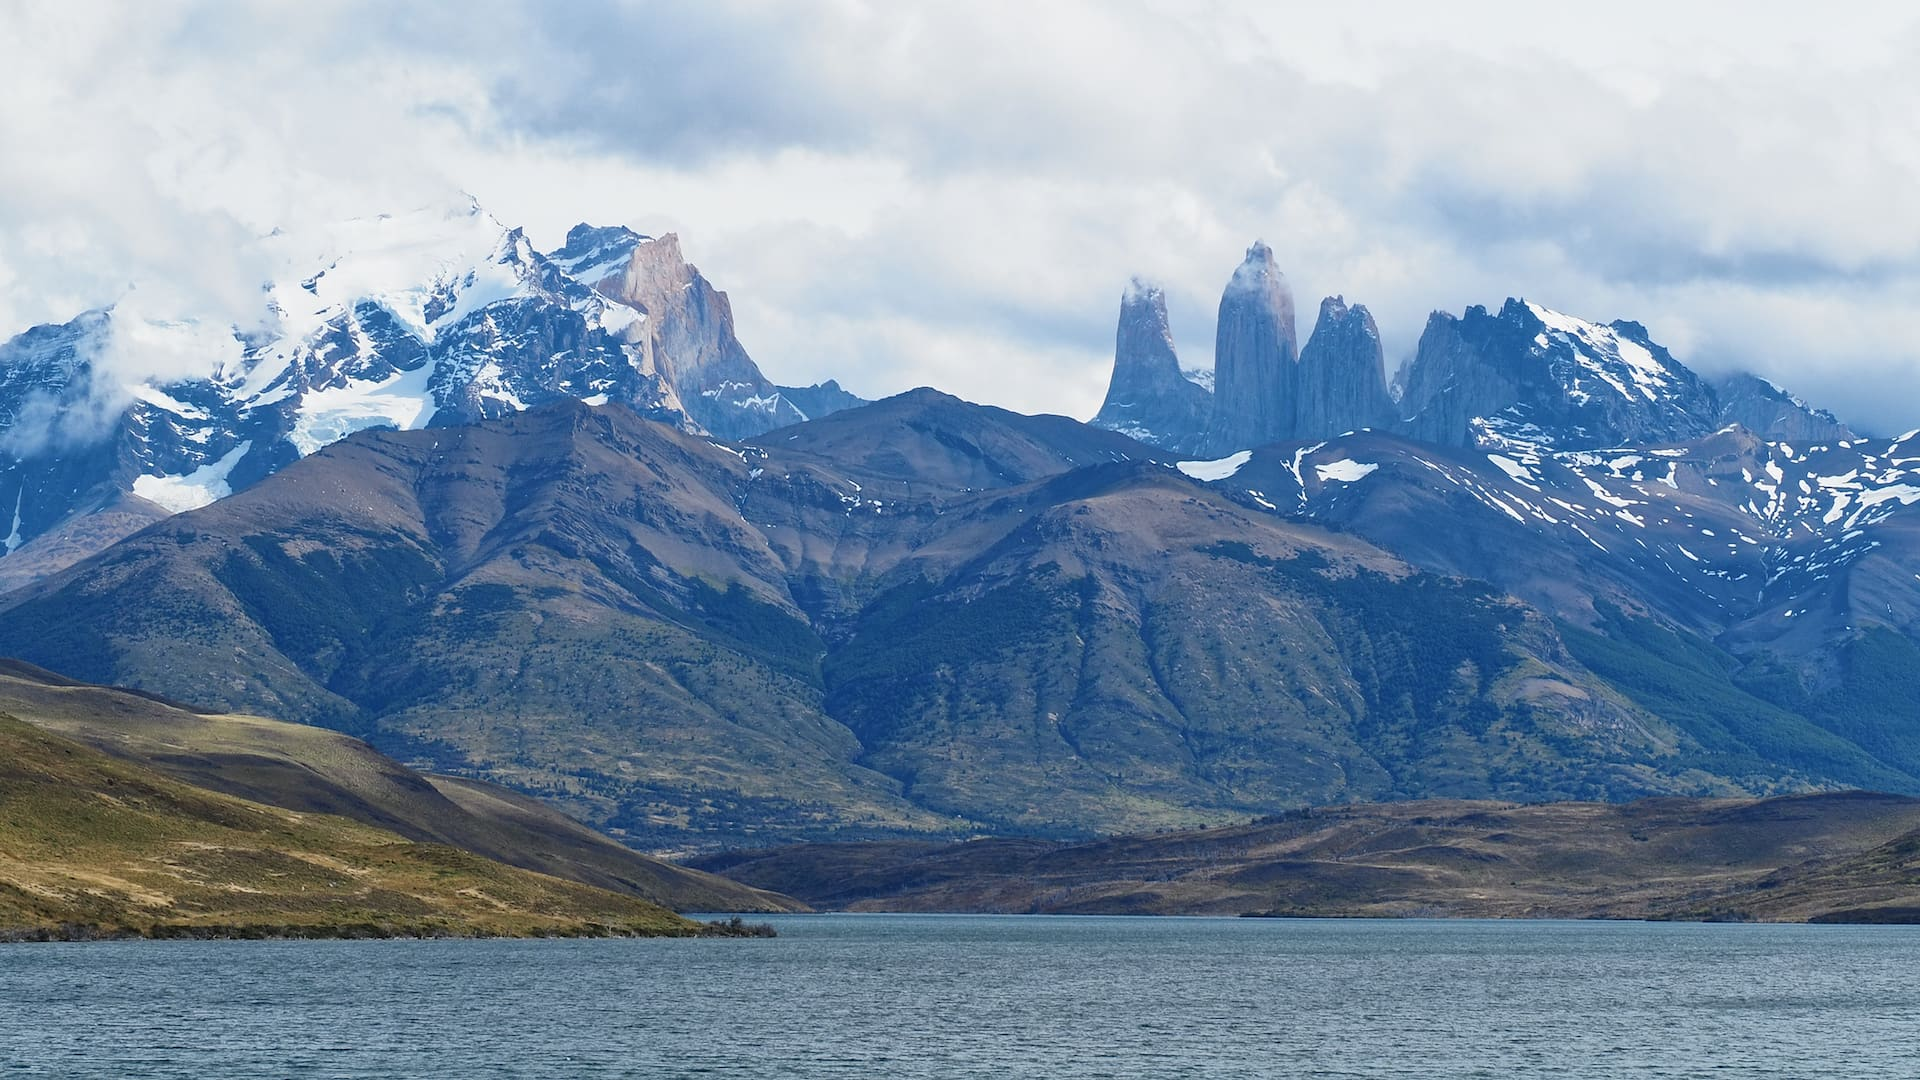 Laguna Azul and the Towers of Paine